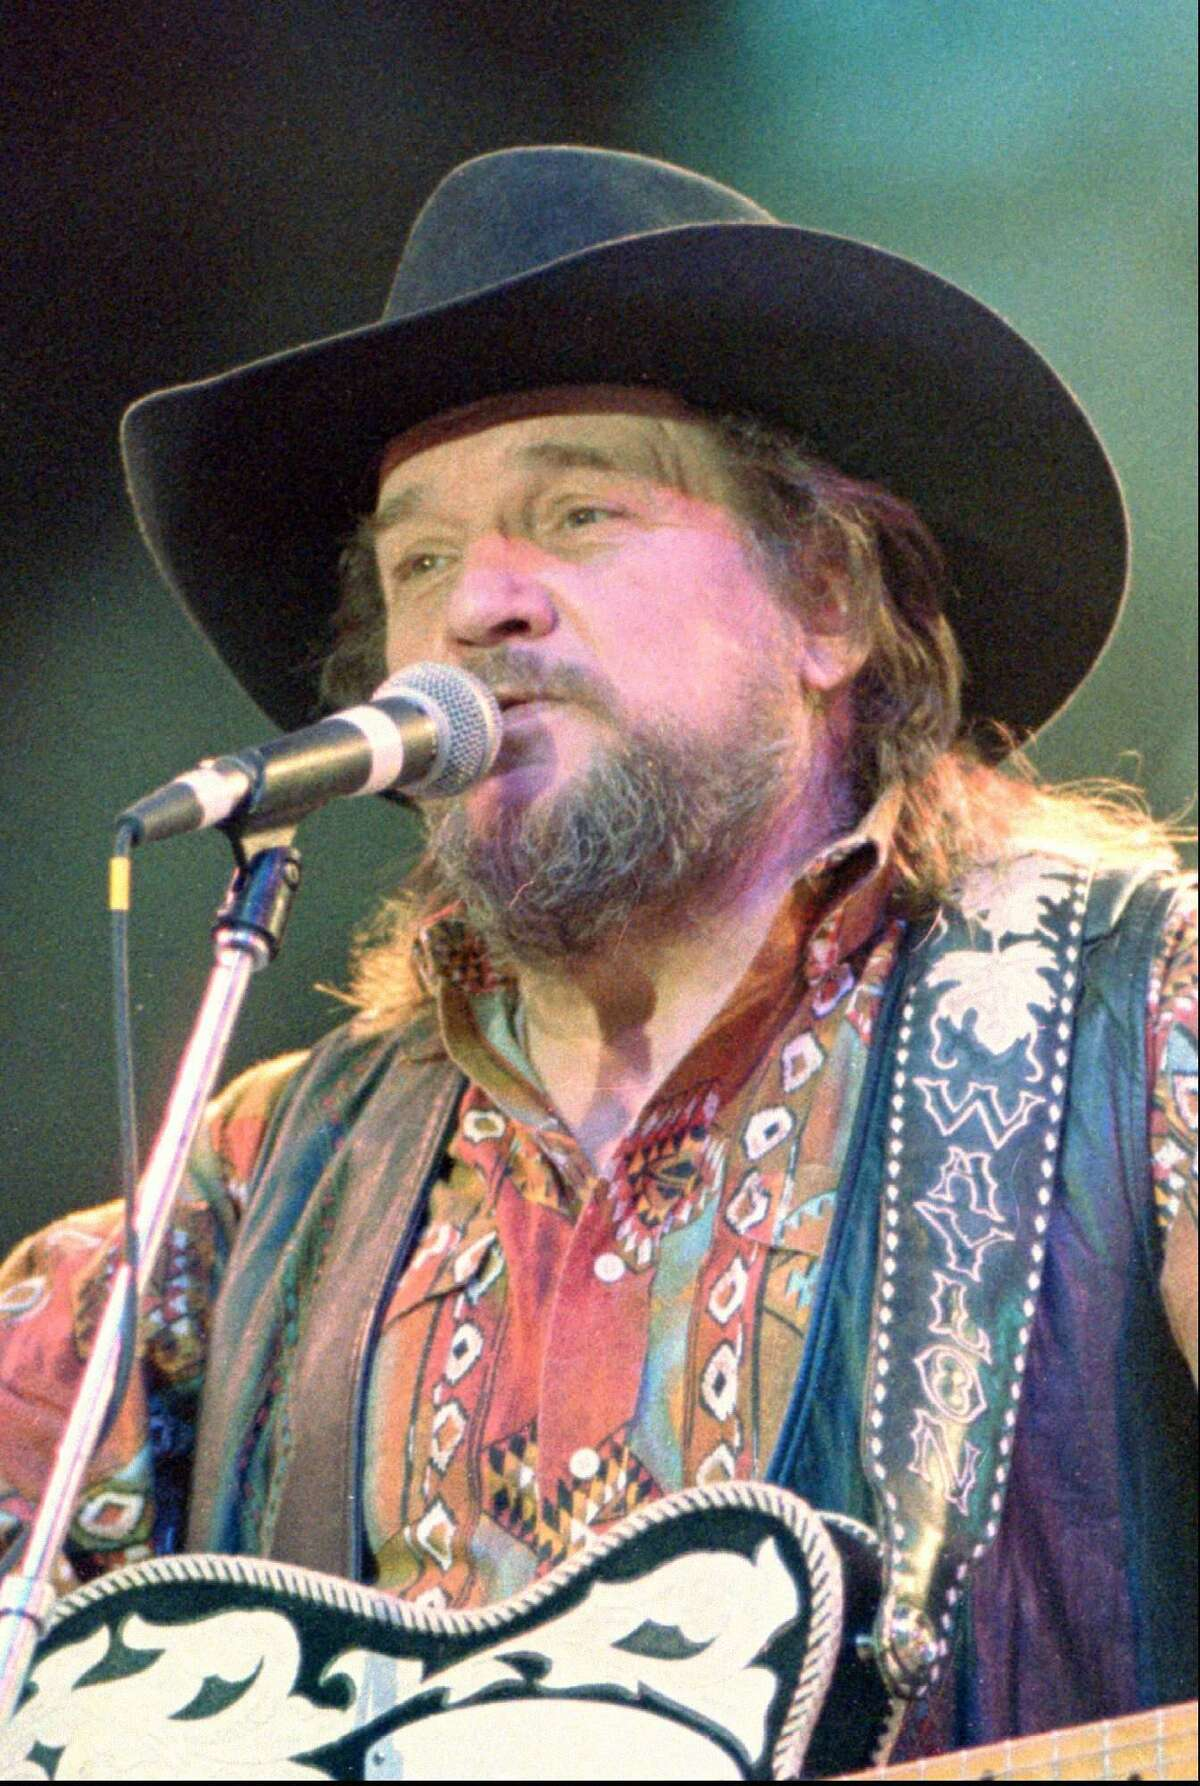 Waylon Jennings, shown in this March 1992 file photo